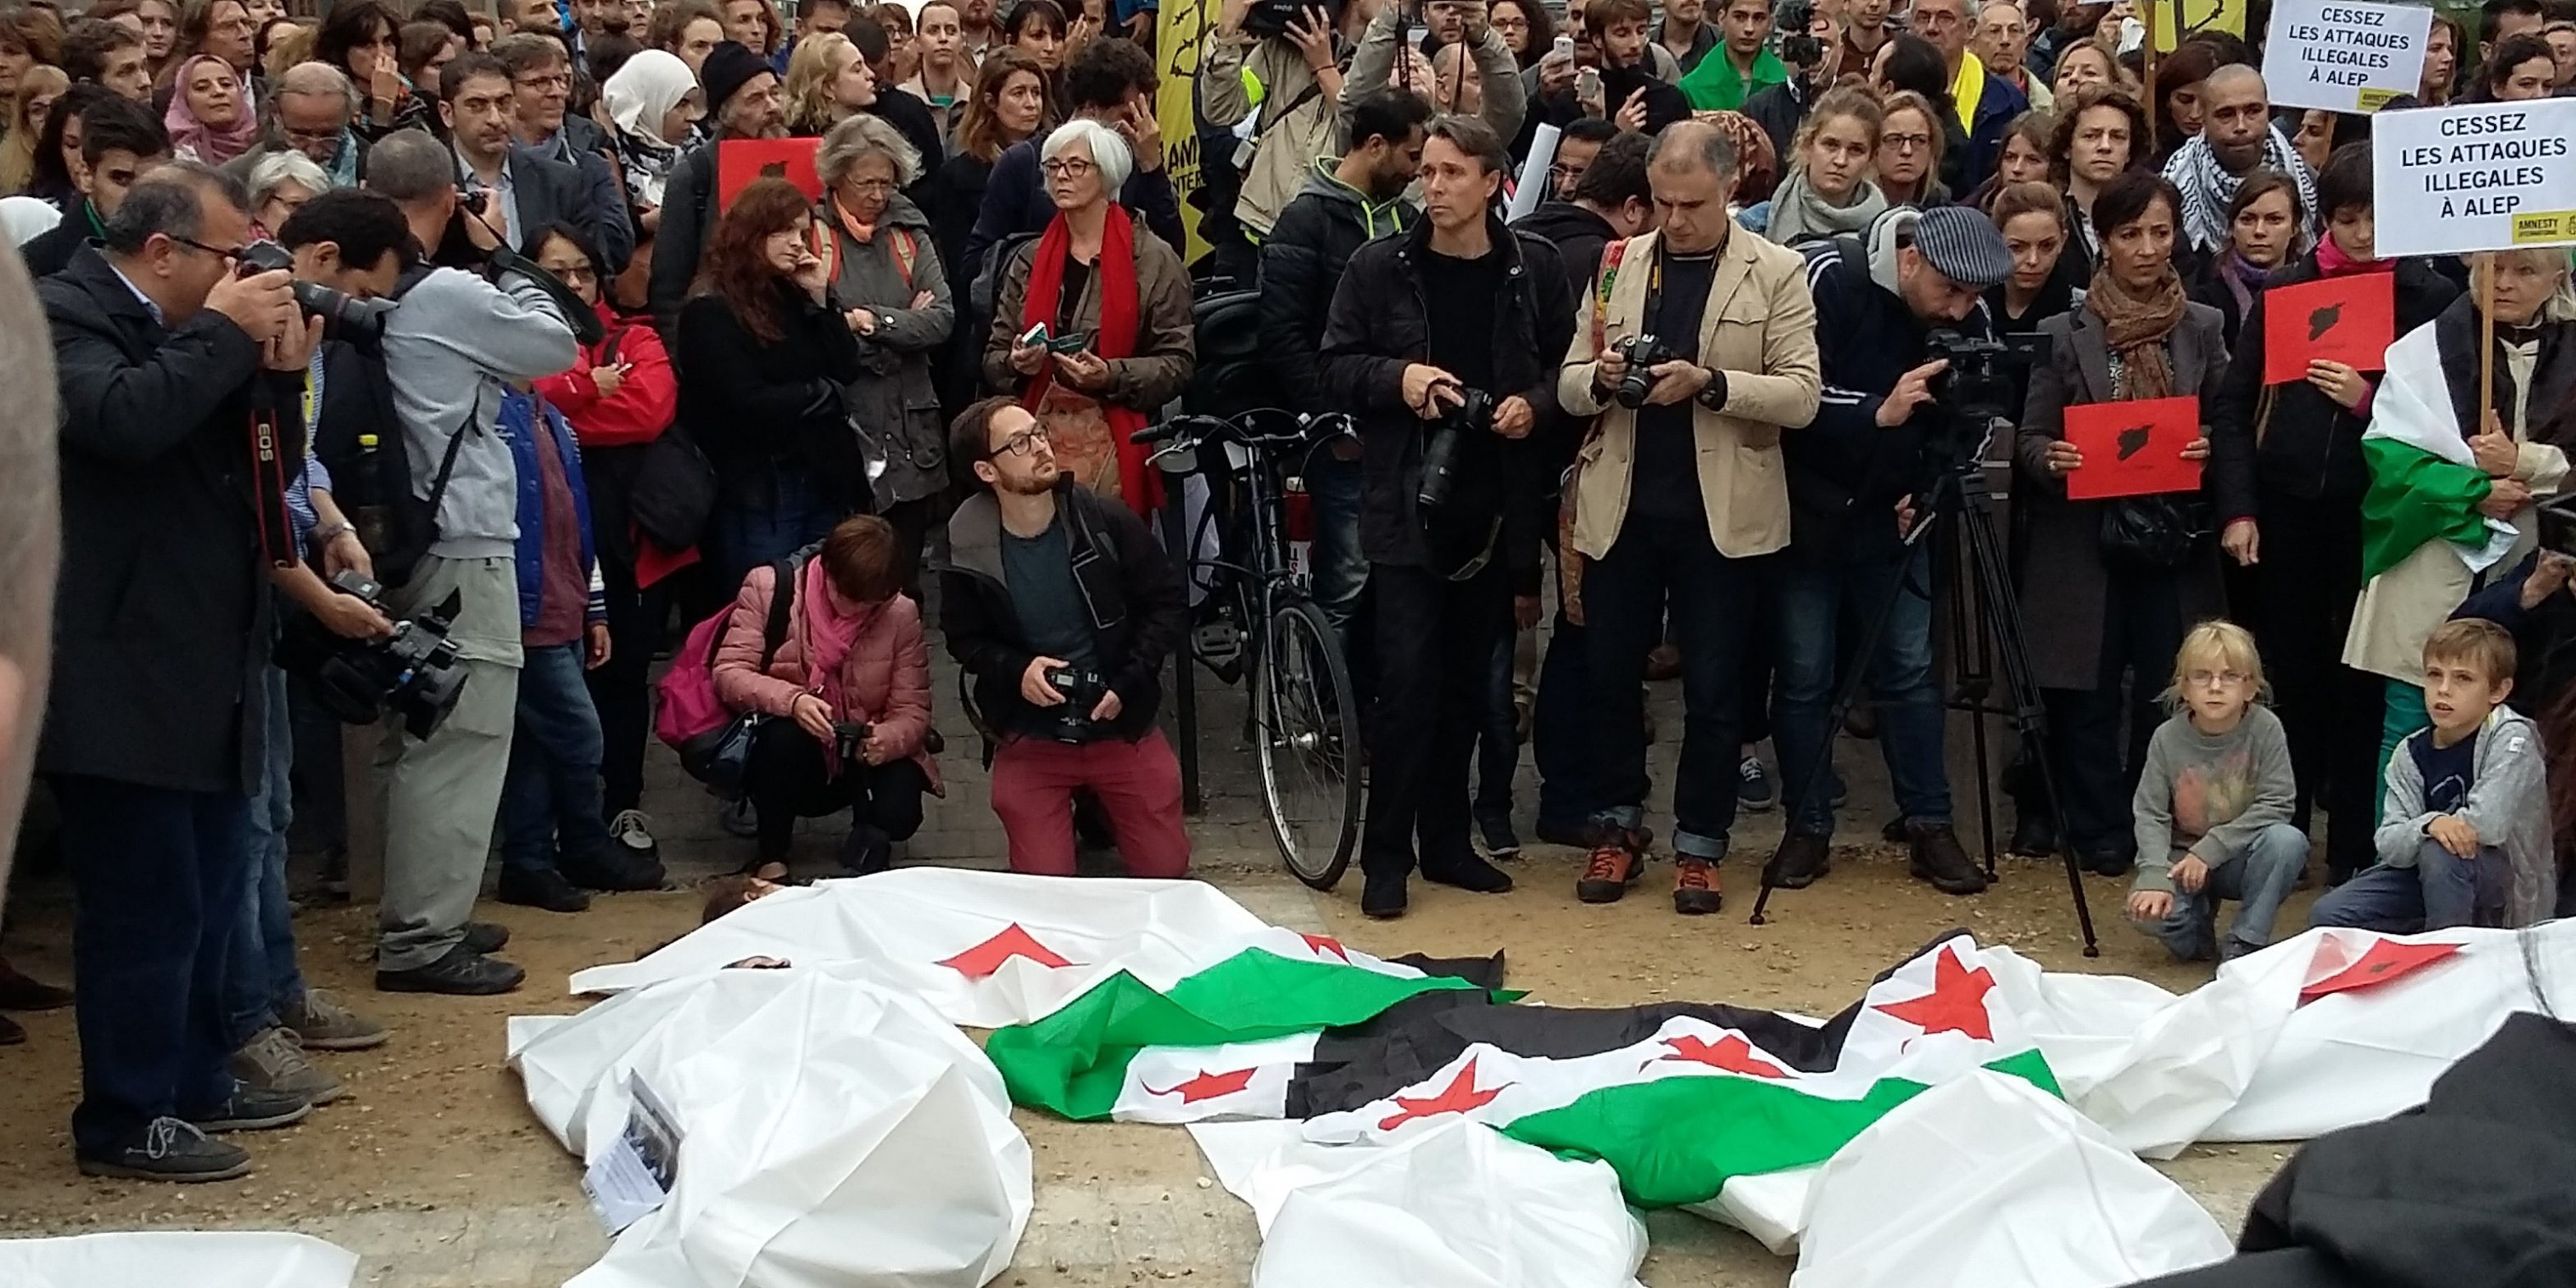 picture-march-to-save-aleppo-brussels